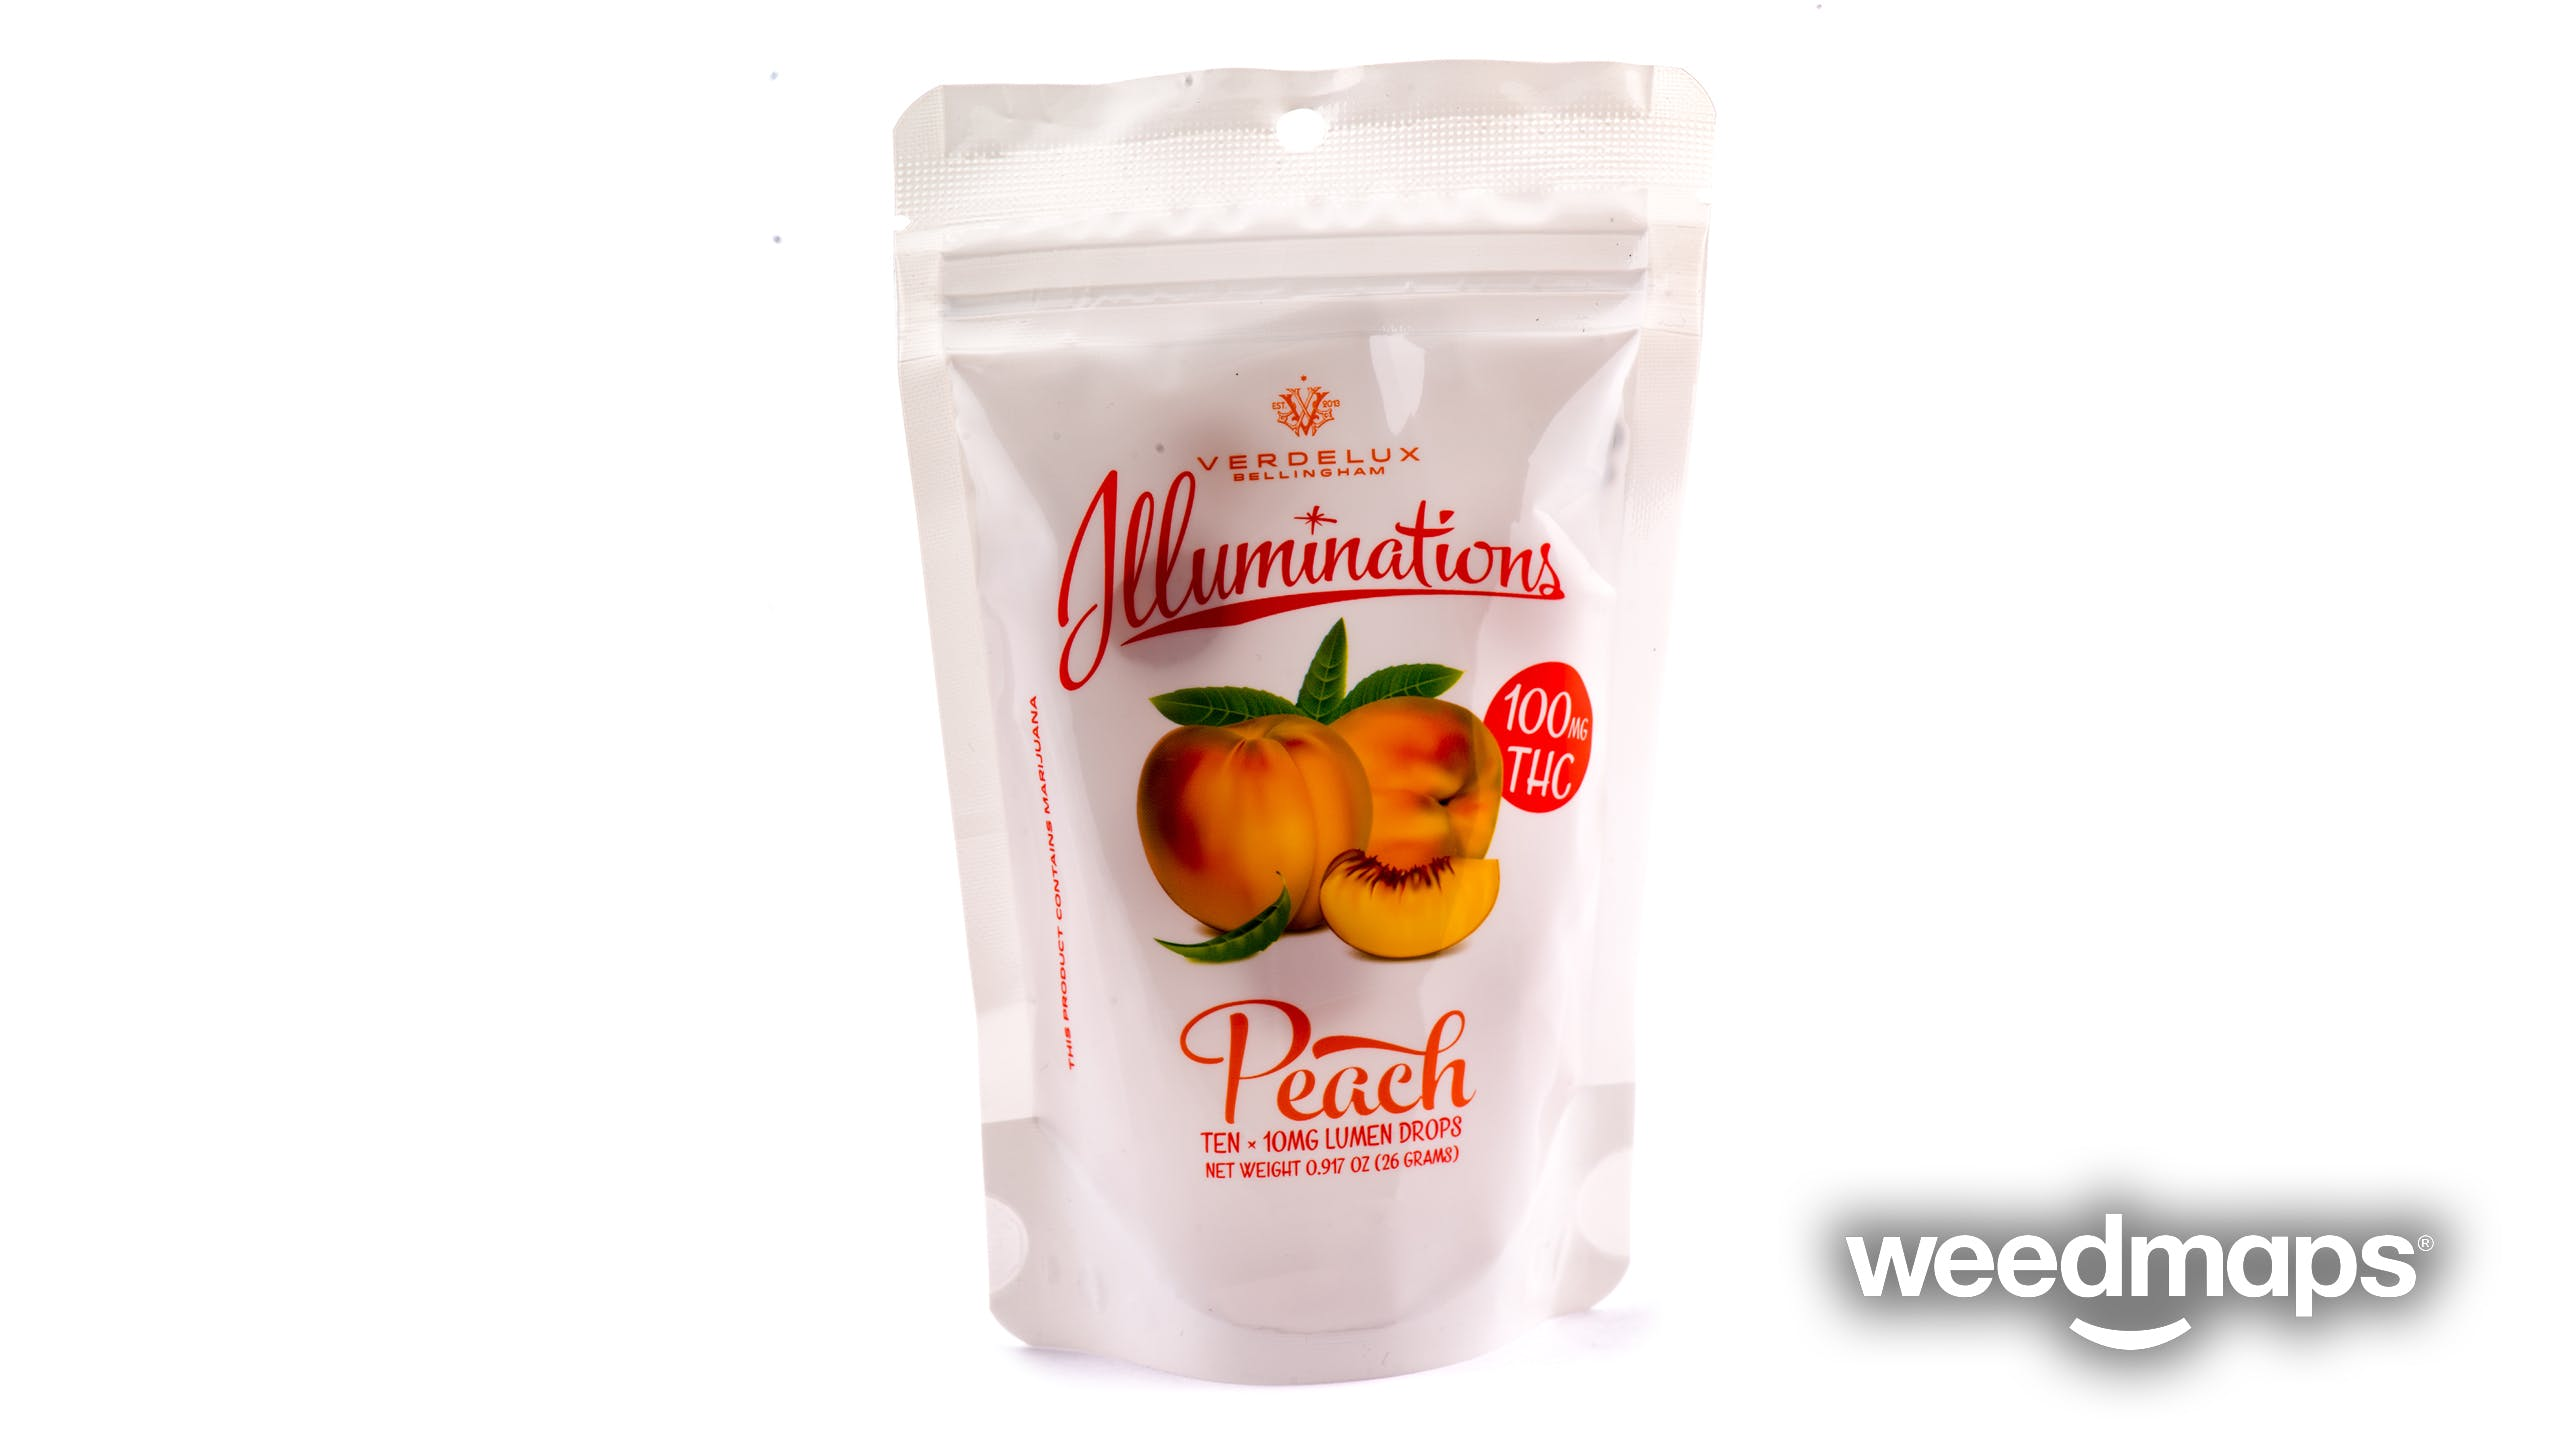 edible-verdelux-100mg-peach-illuminations